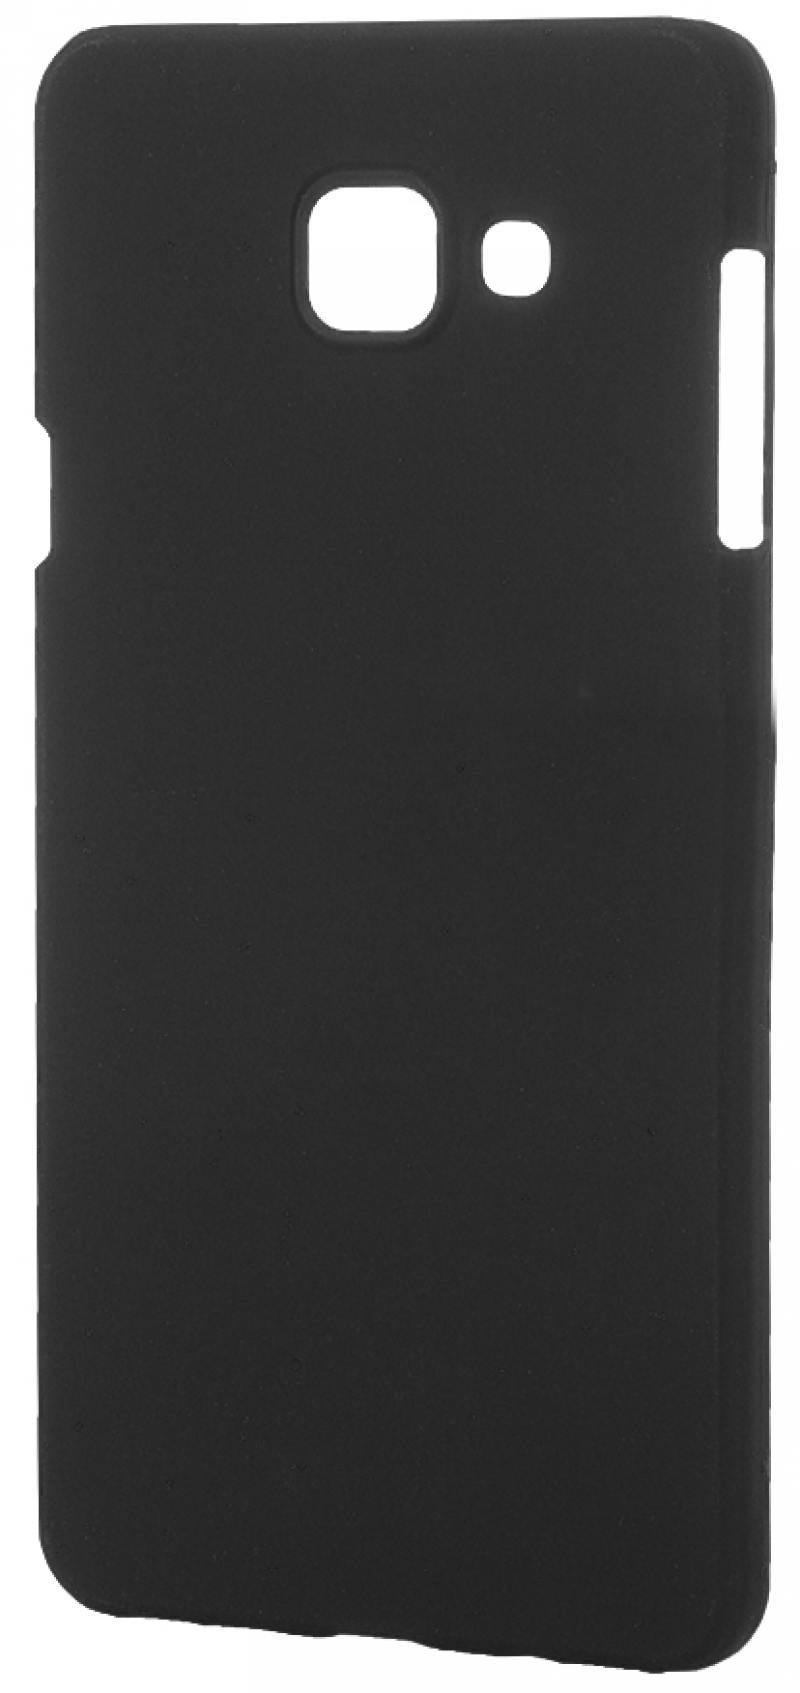 Чехол-накладка для Samsung Galaxy A7 2016 Pulsar CLIPCASE PC Soft-Touch Black клип-кейс, пластик клип кейс uniq samsung galaxy s10e black